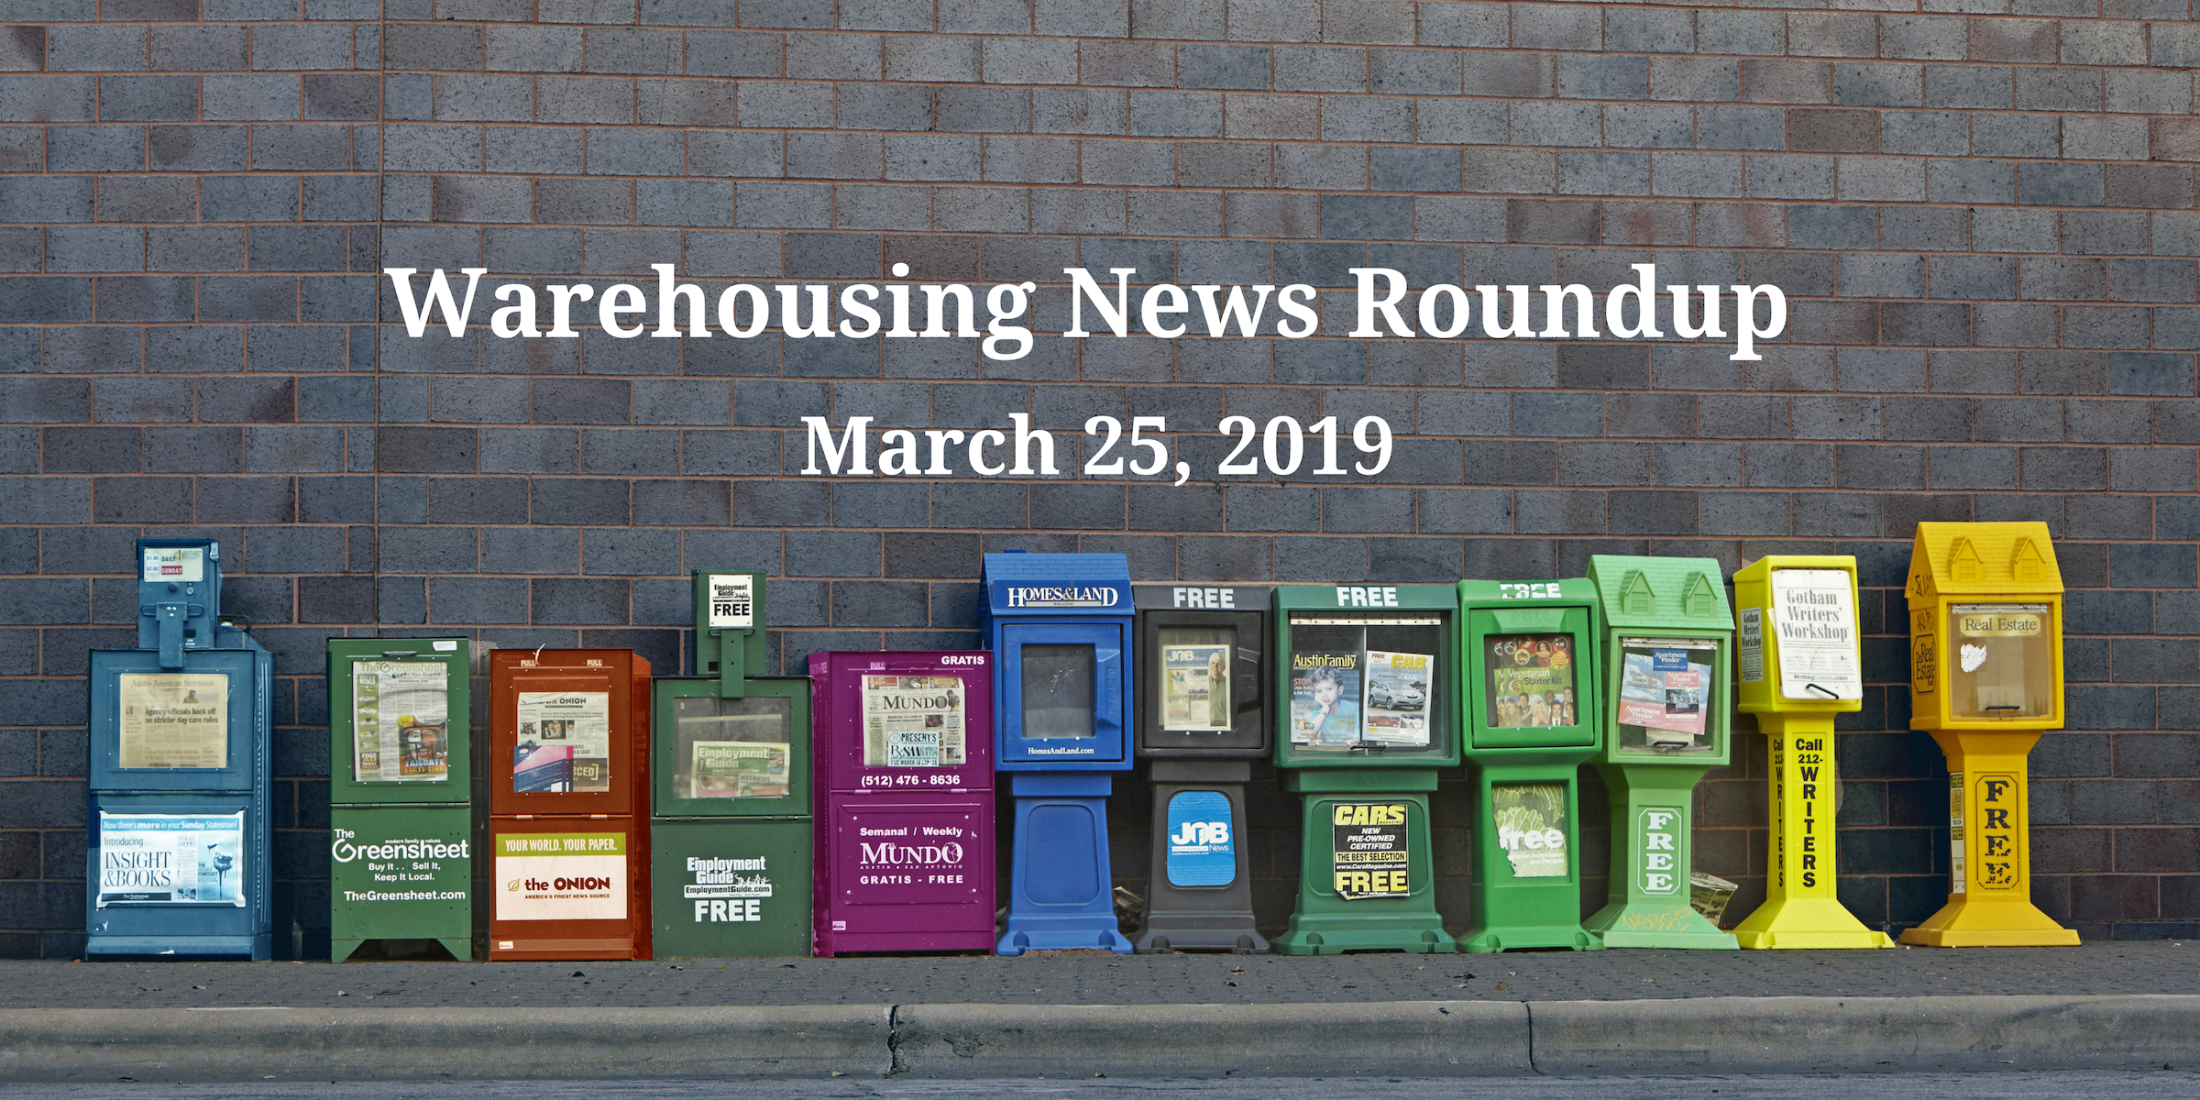 Warehousing News Roundup: March 25, 2019